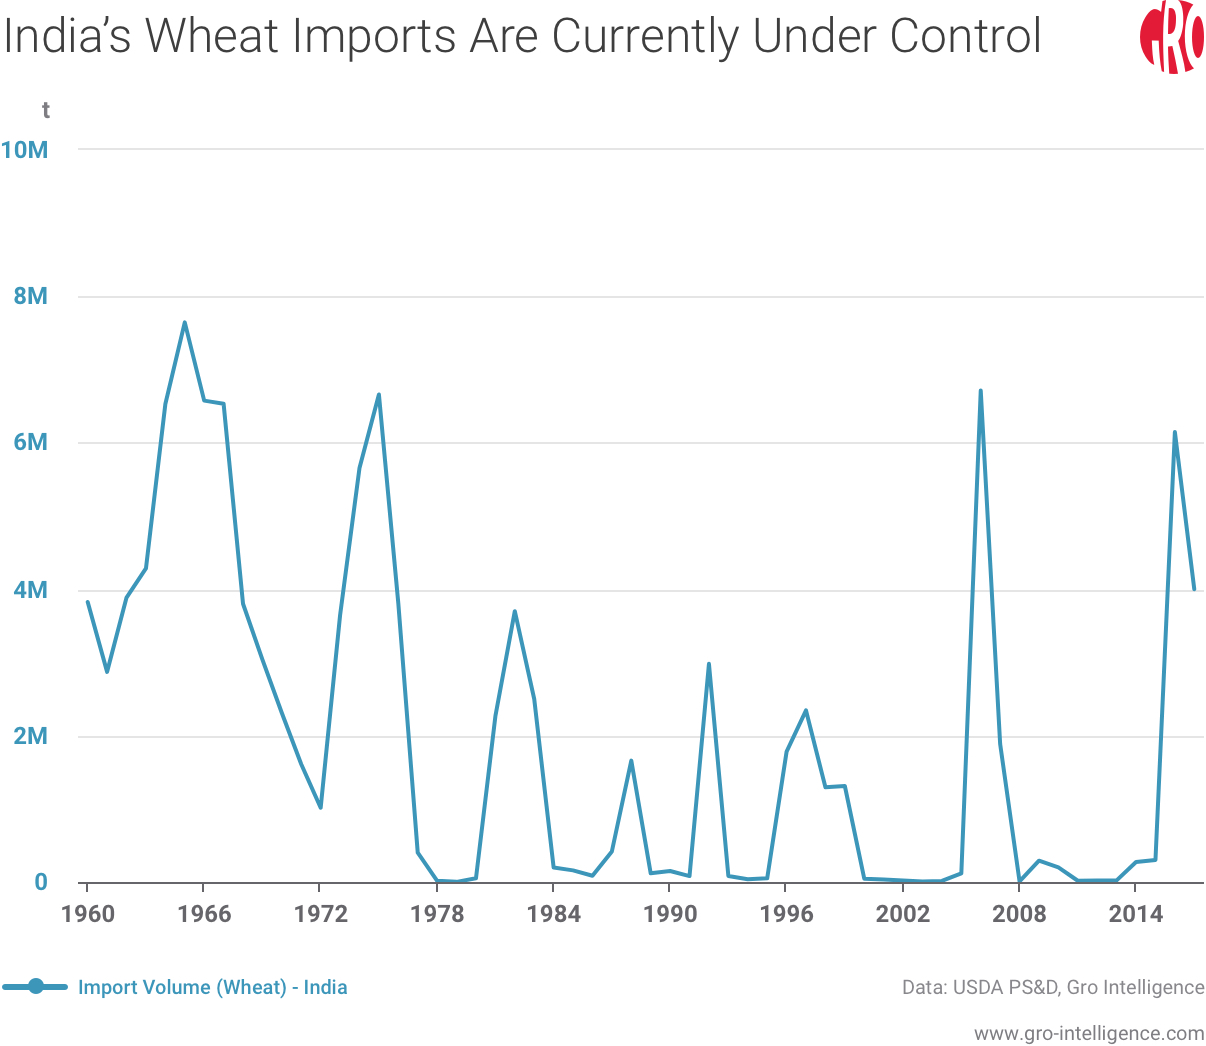 India's Wheat Imports Are Under Control